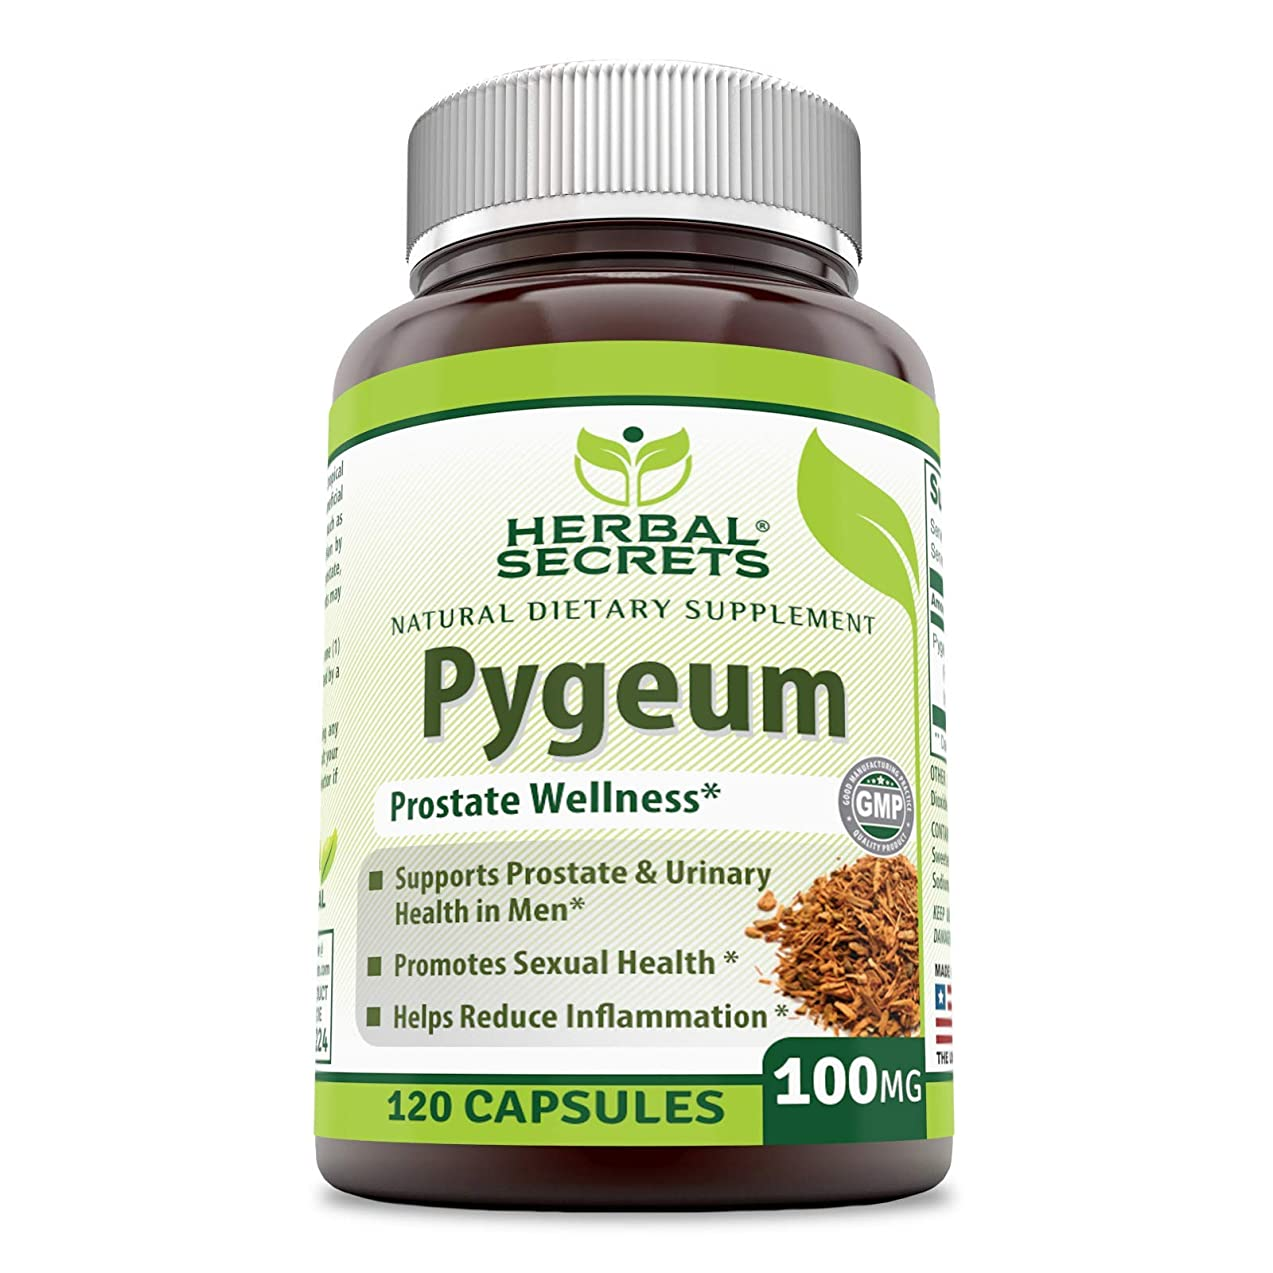 Herbal Secrets African Pygeum Extract - 100mg 120 Capsules (Non-GMO) - Supports Prostate & Urinary Health on Men, Promotes Sexual Health, Helps Reduce Inflammation* nbcjazyg061